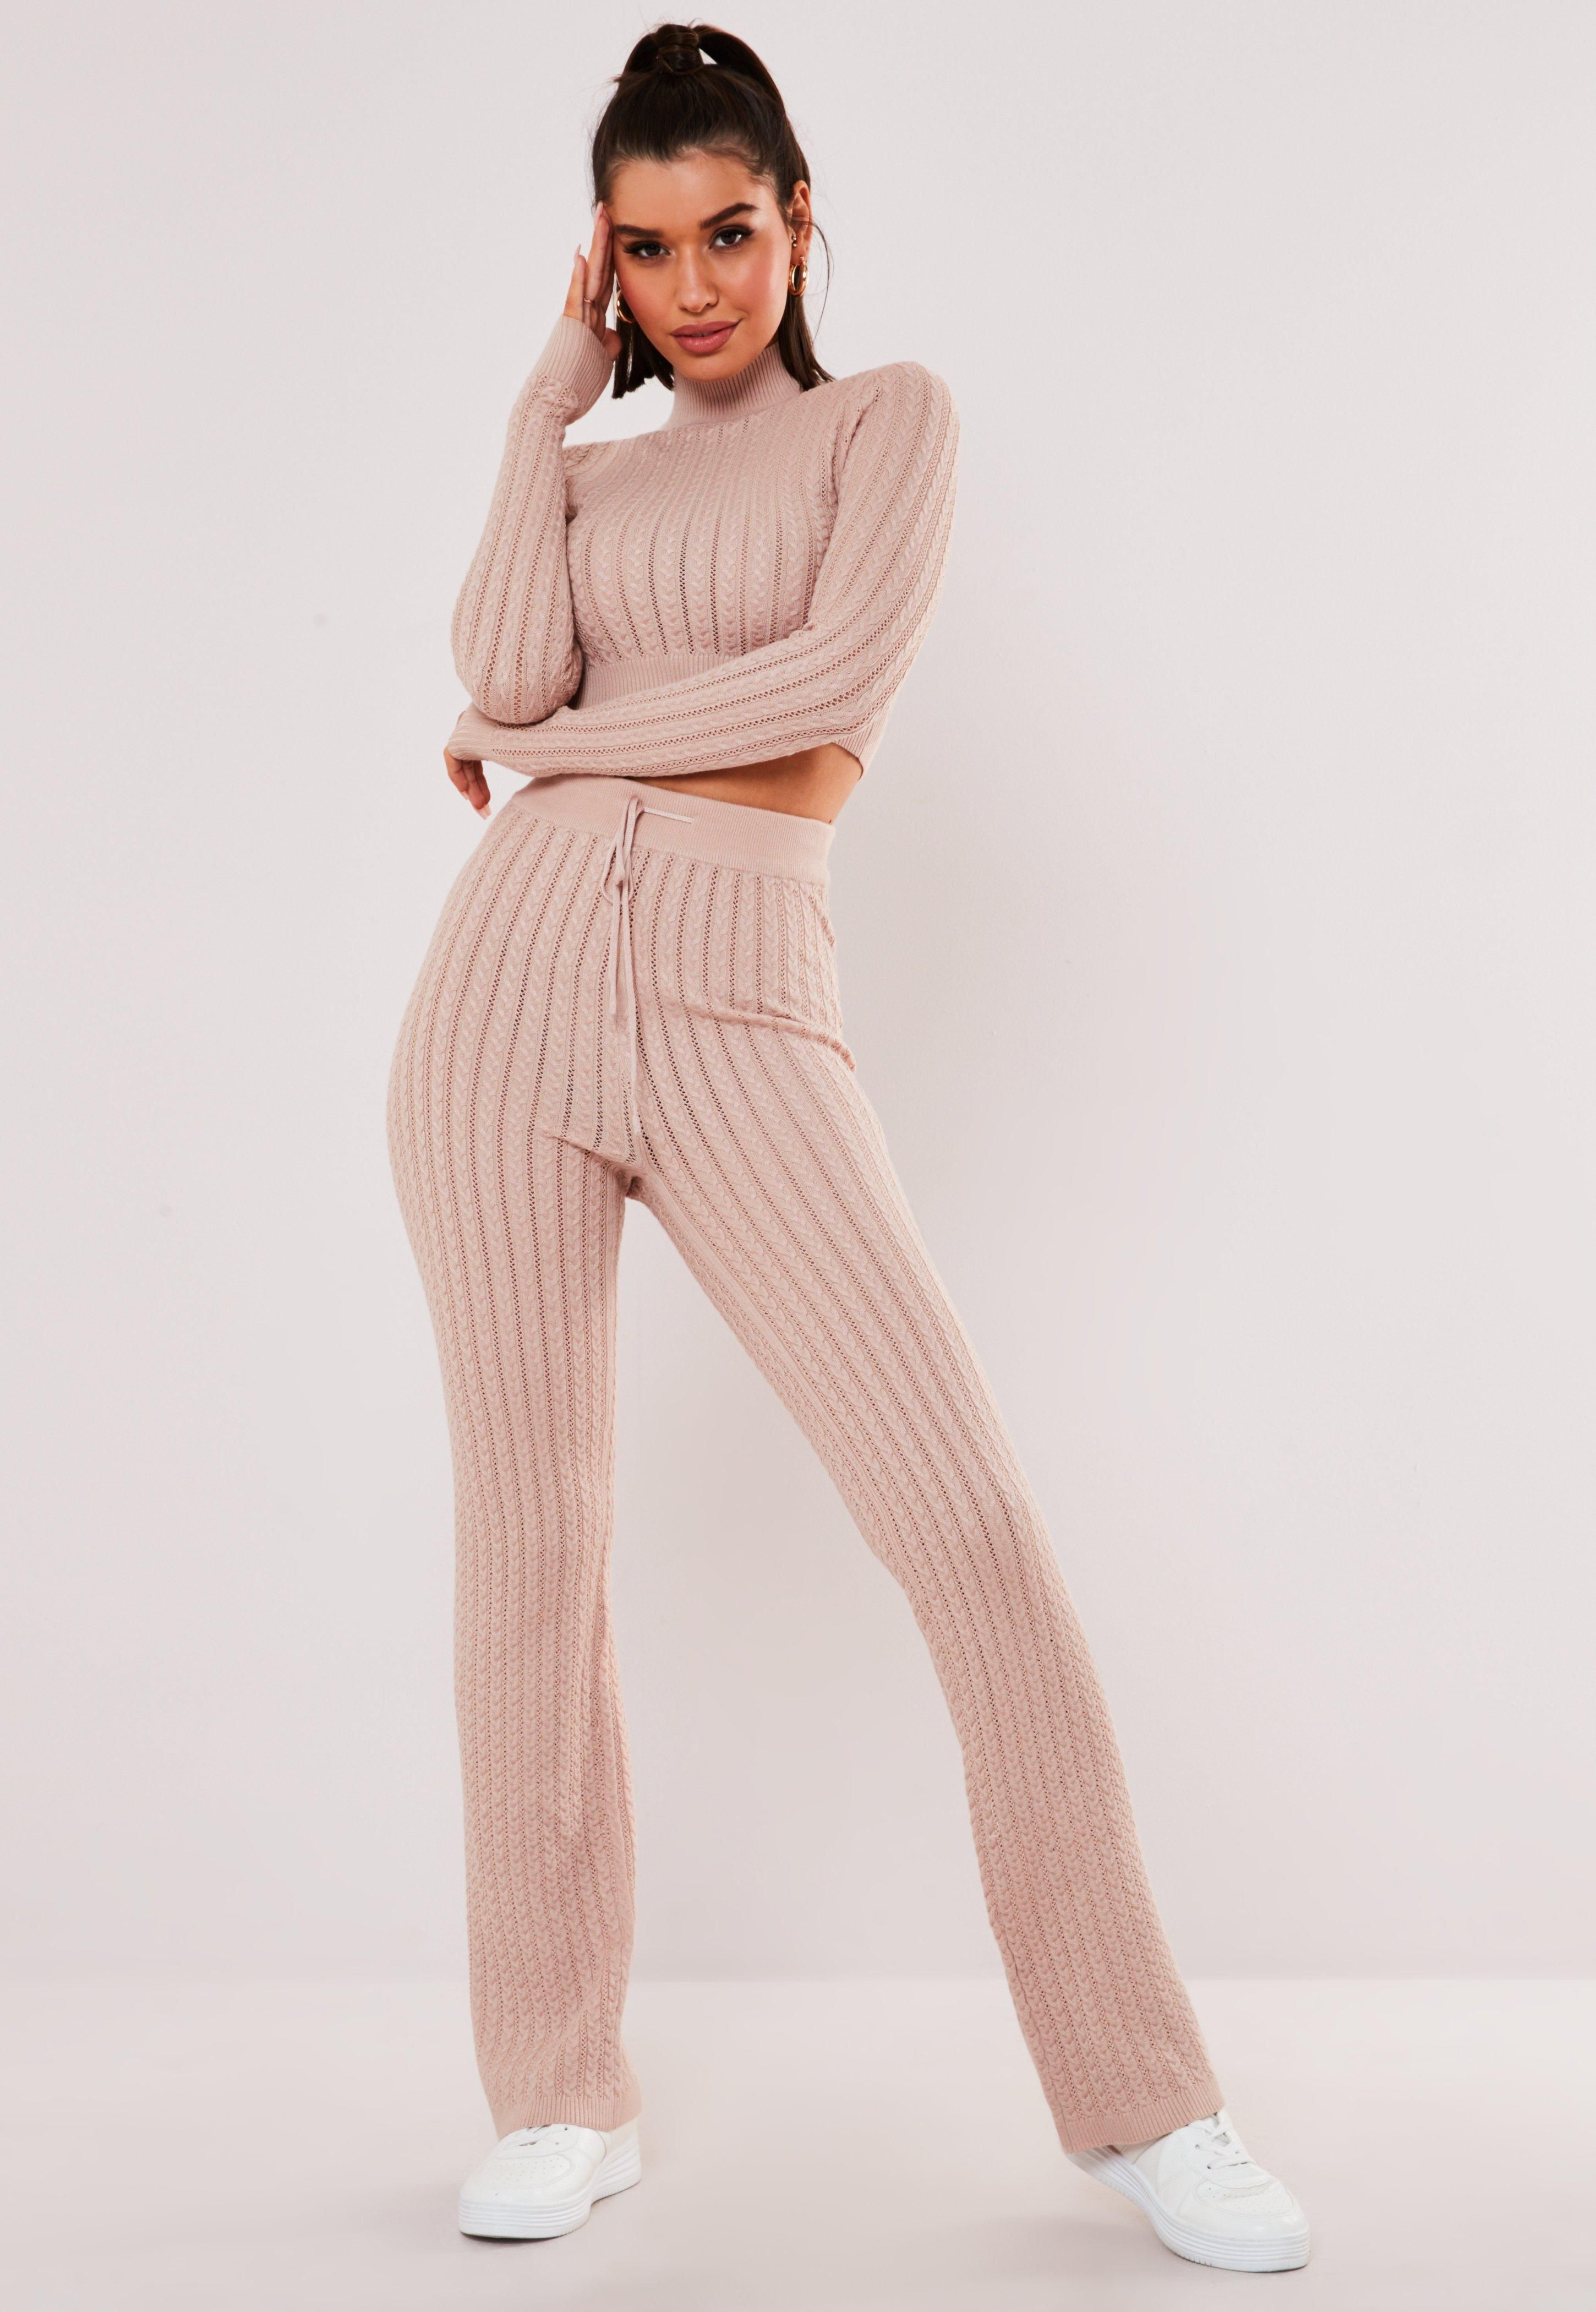 Sweaters - Women's Knitted Clothes Online | Missgu